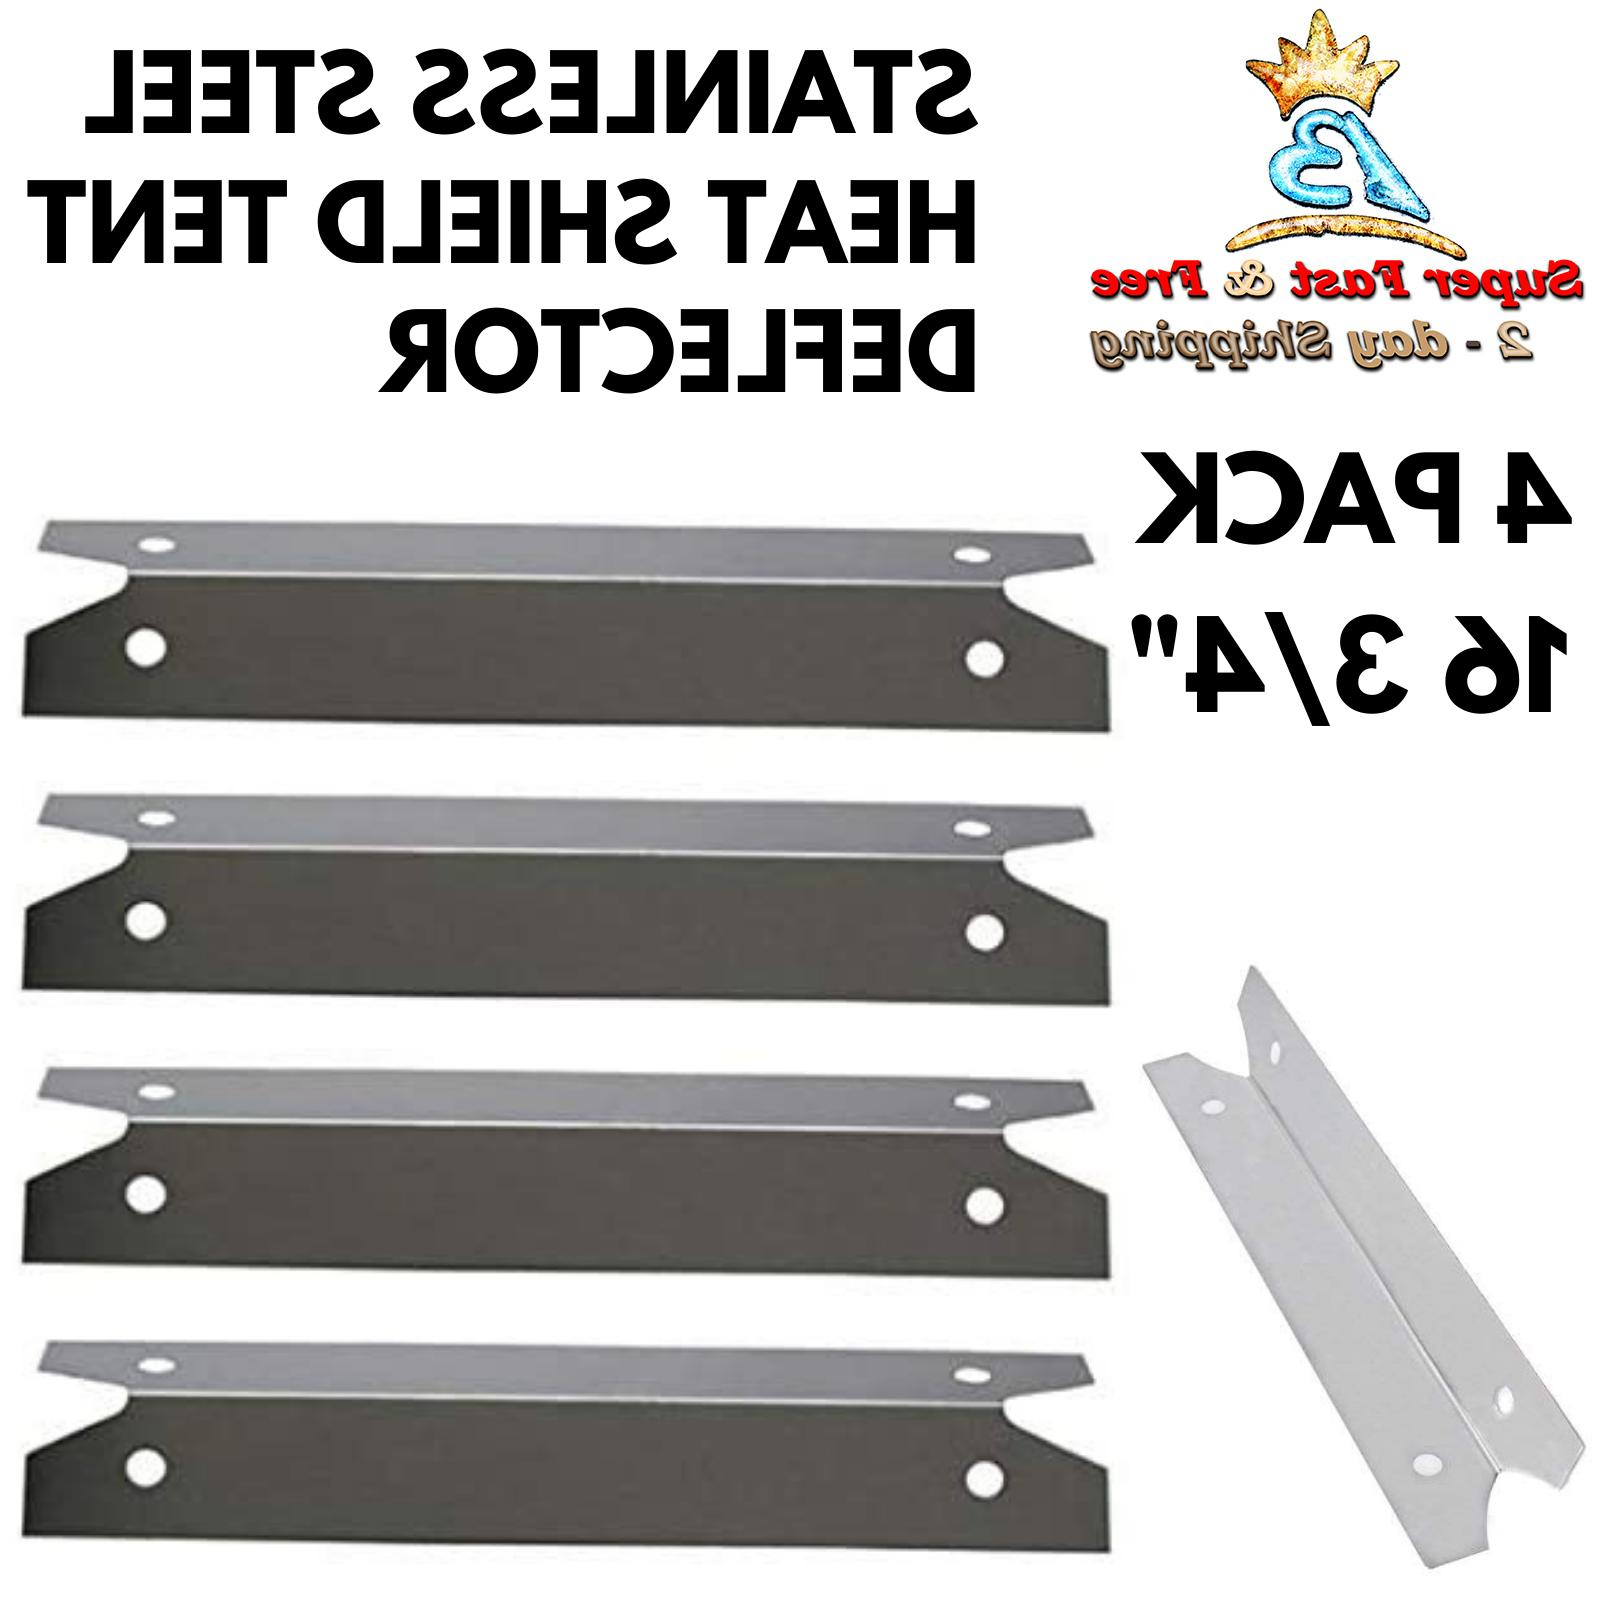 BBQ Replacement Parts Gas Grill Heat Plates Shield Tent For